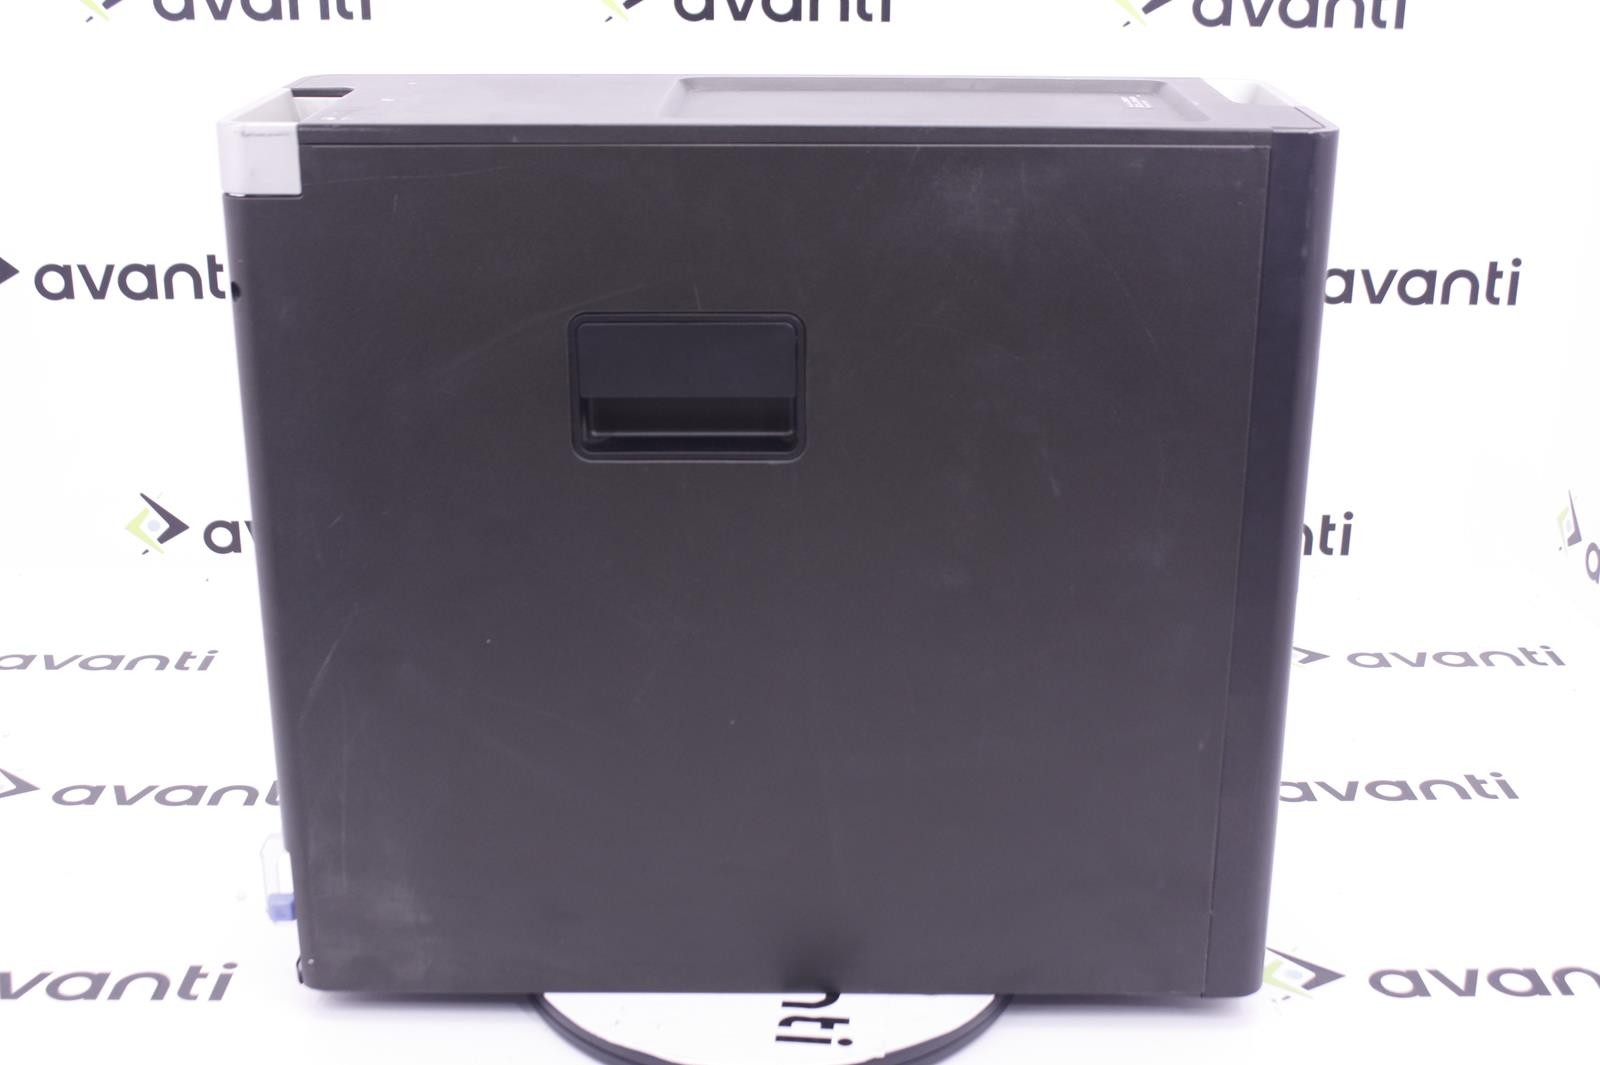 29374-T3600-E51607-2GB-QNVS450-NOHDD_33791_base